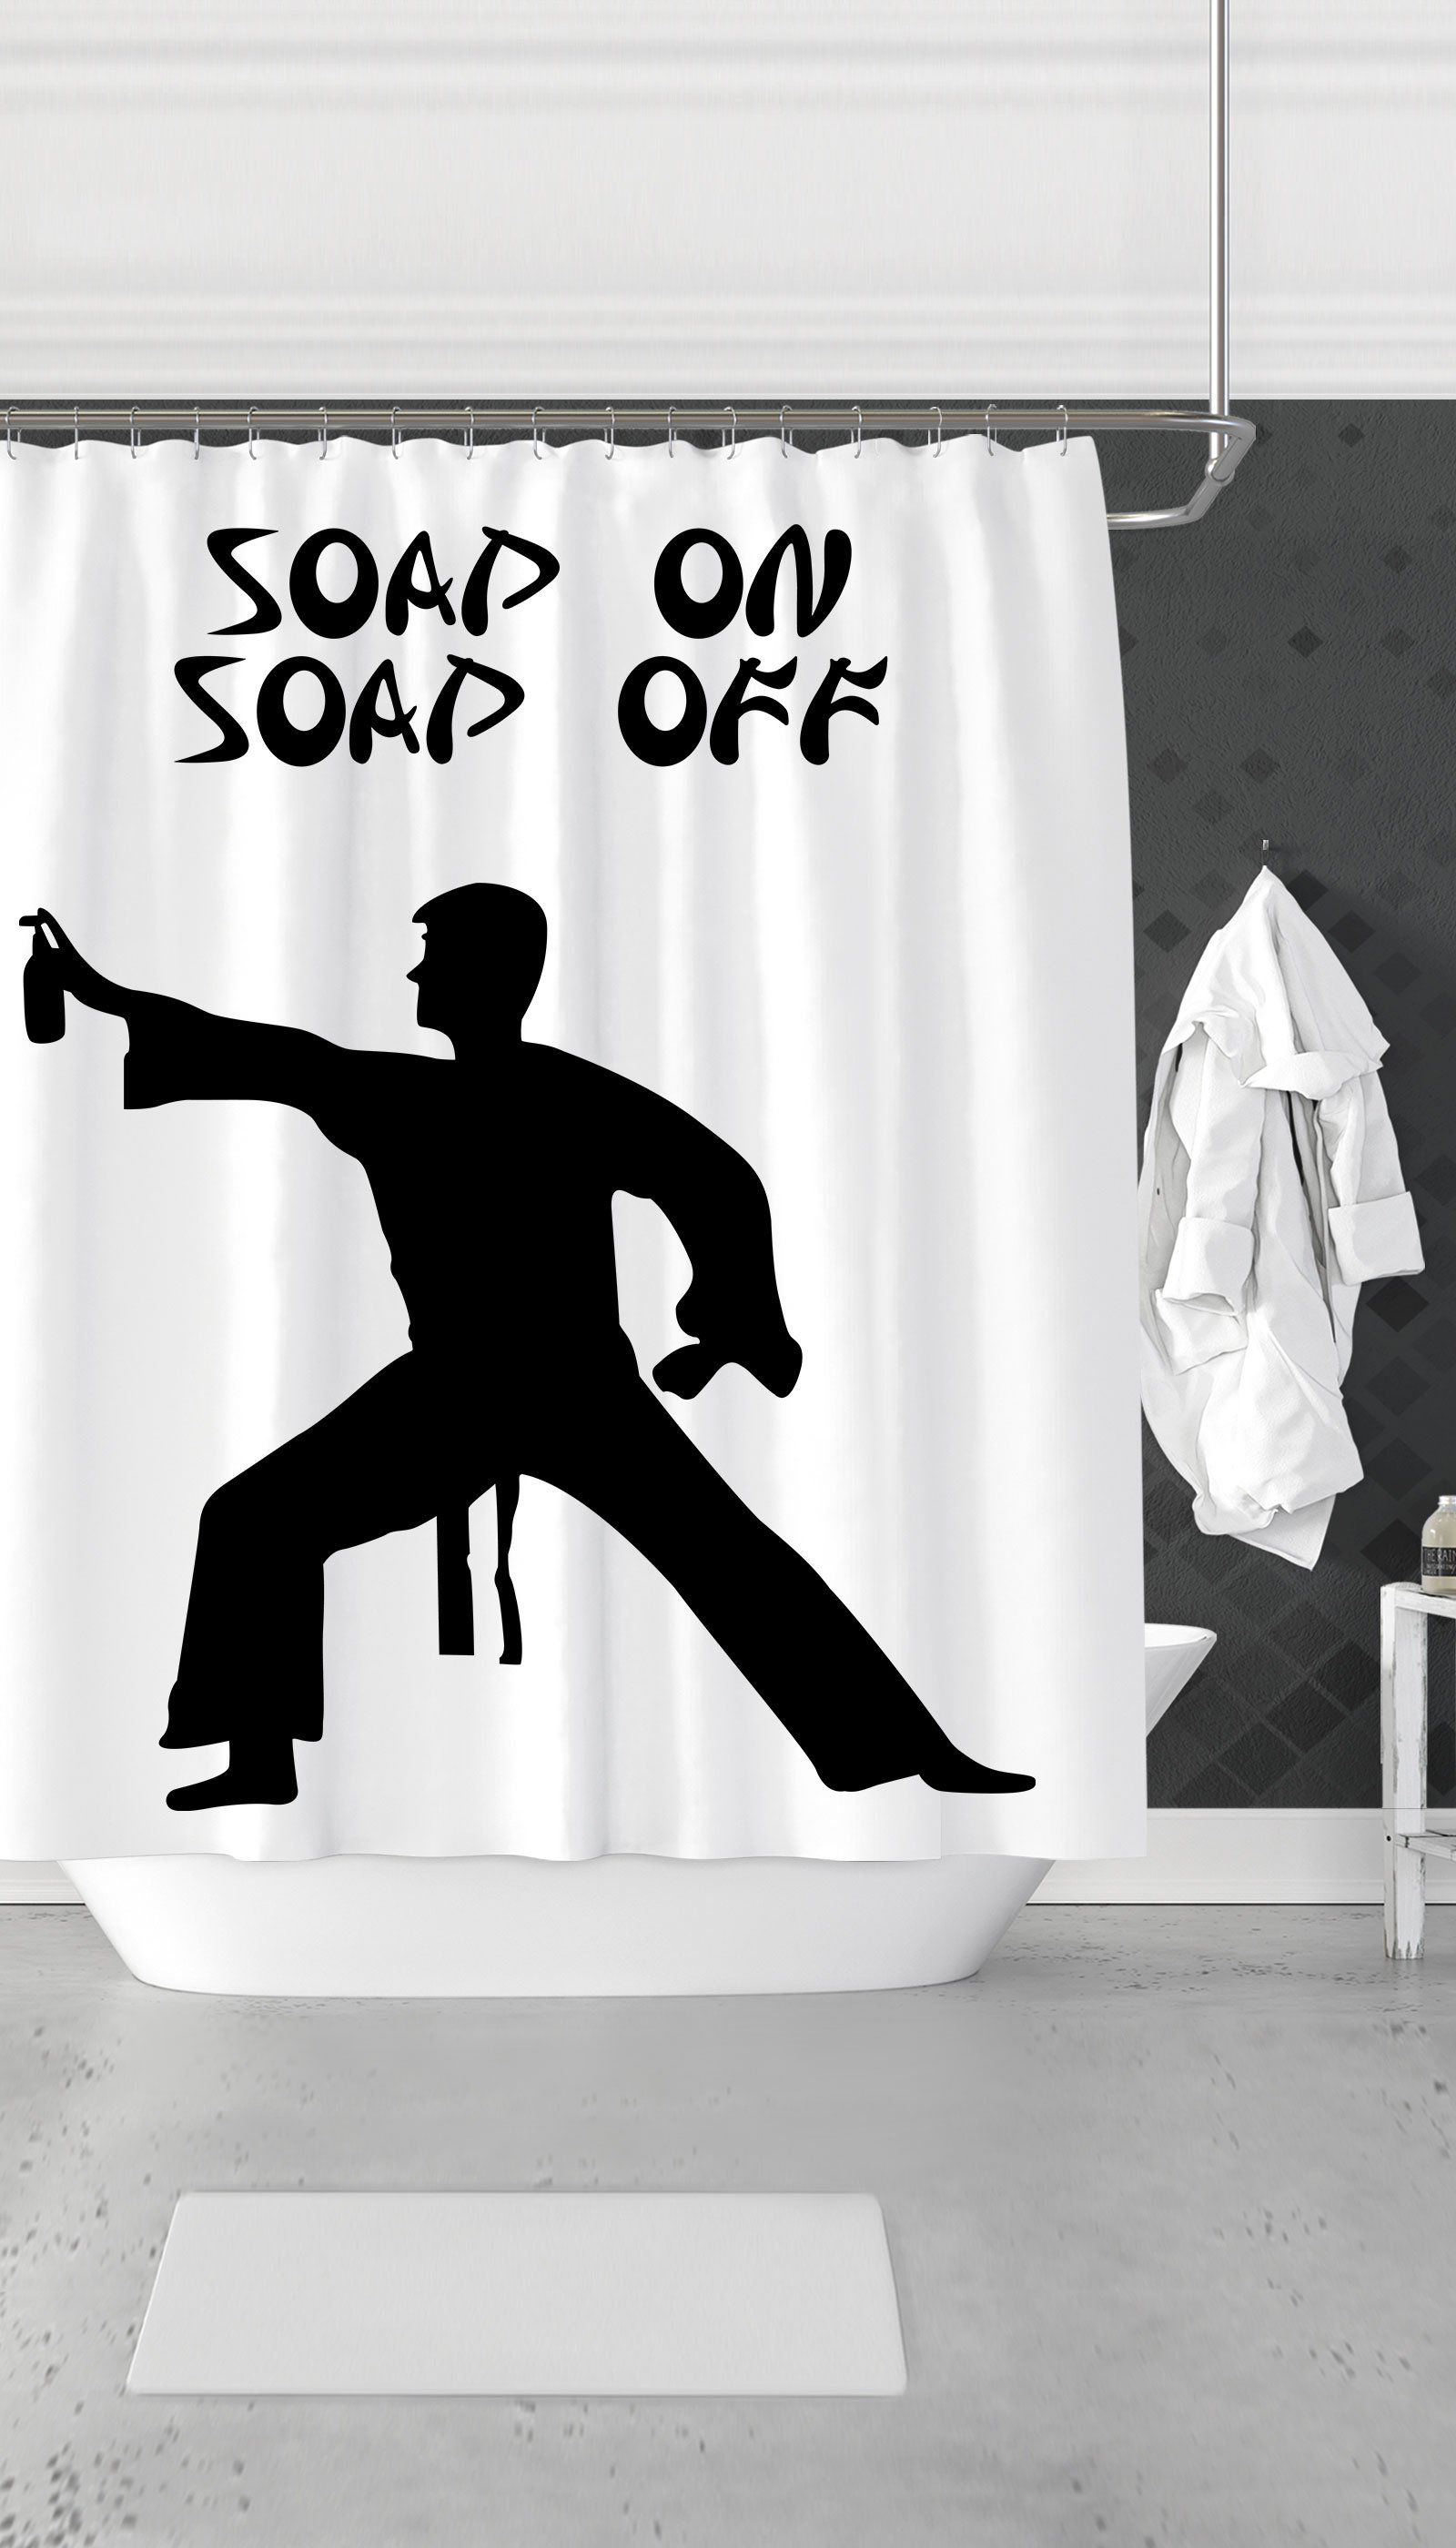 Soap On Soap Off Funny Shower Curtain Diy Bathroom Remodel Funny Shower Curtains Bathrooms Remodel